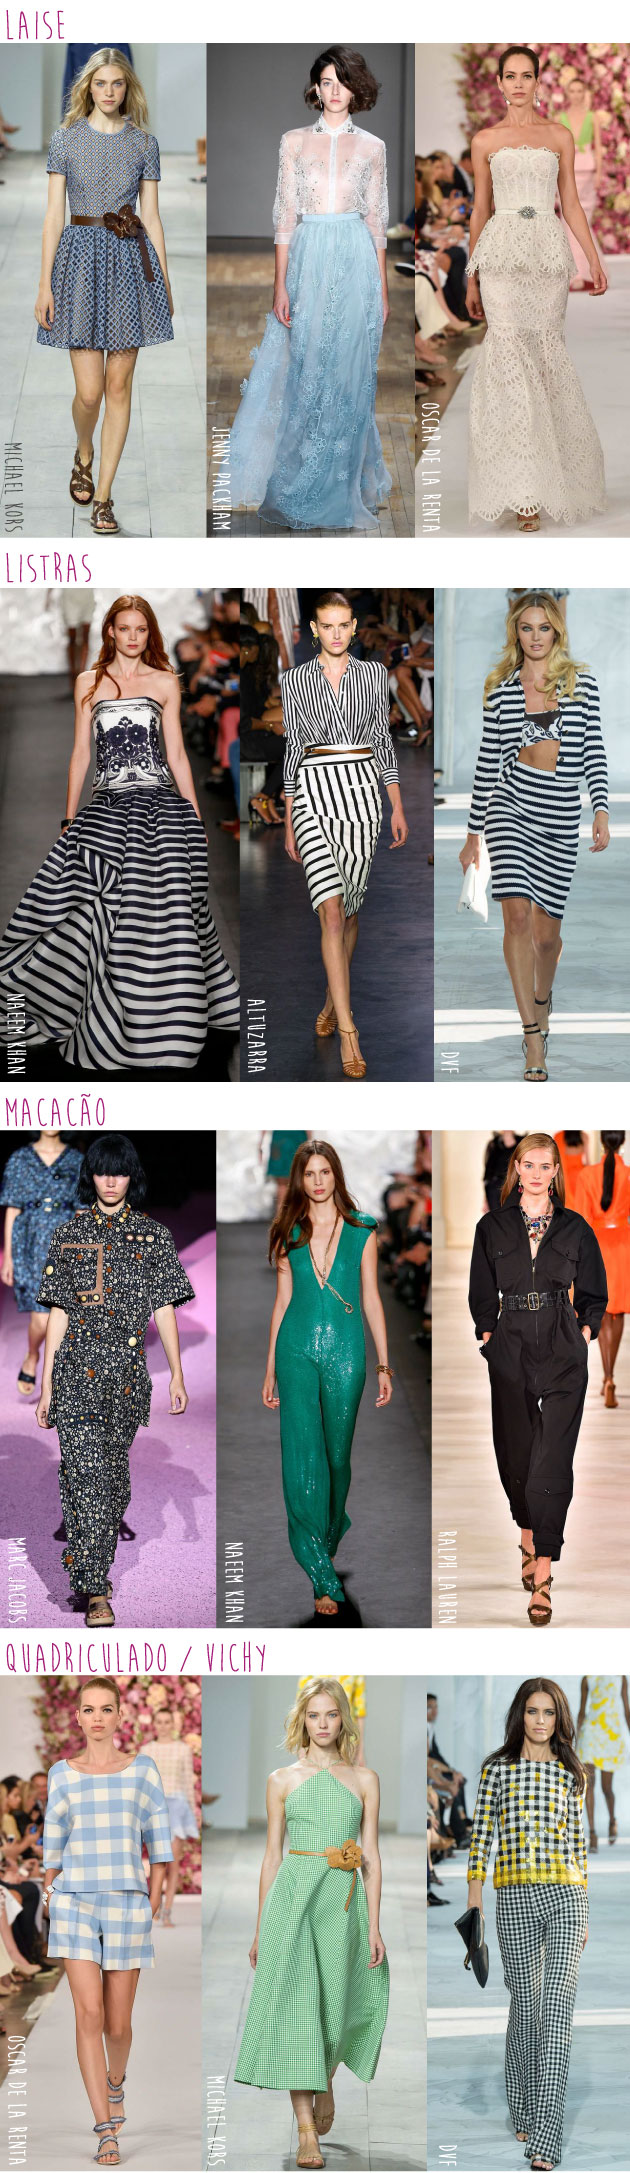 trend-report-tendencias-nyfw-new-york-fashion-week-spring-2015-primavera-looks-desfiles2